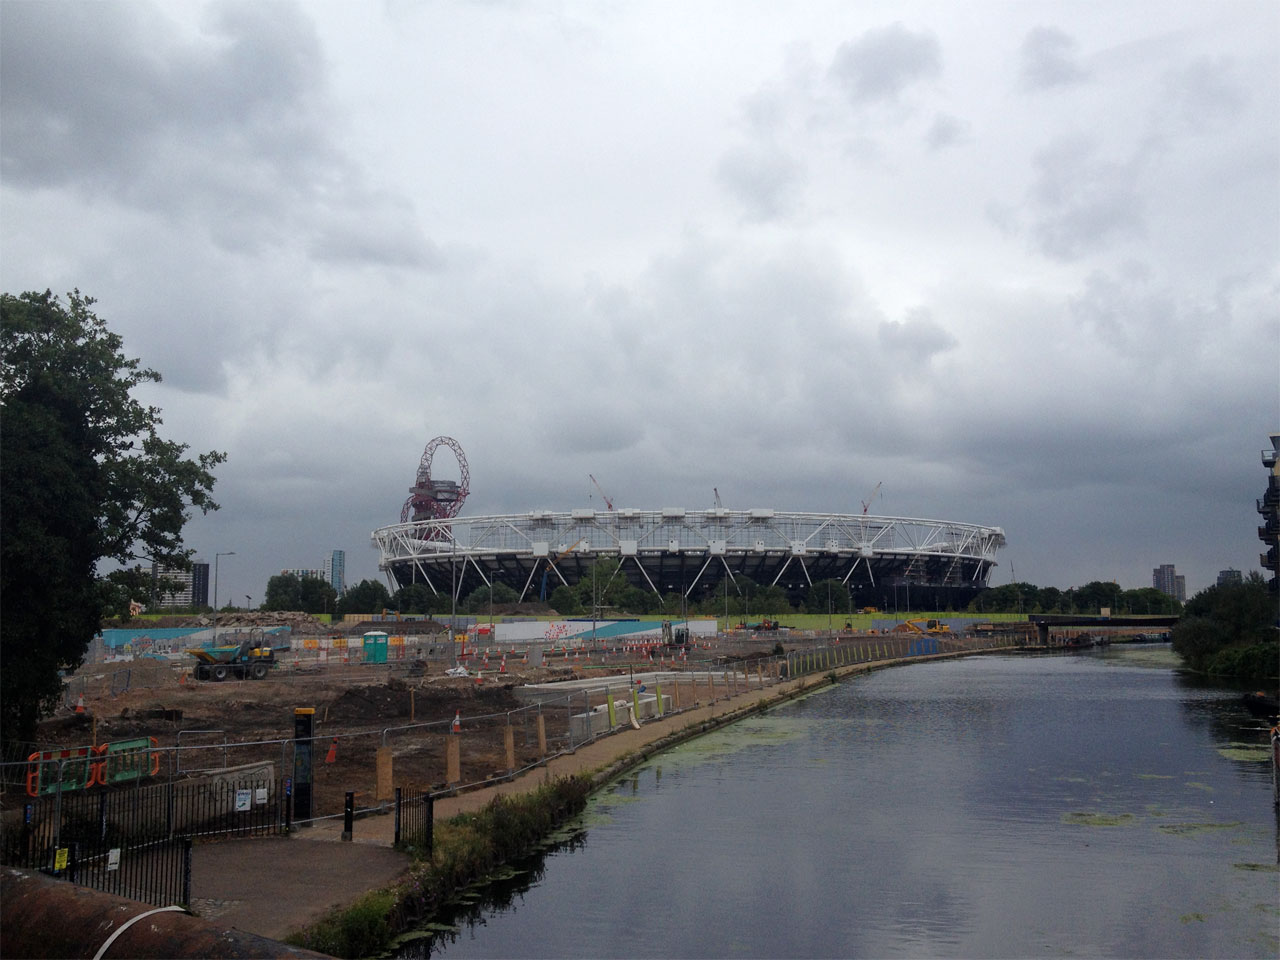 View of the Olympic Stadium from White Post Lane, London